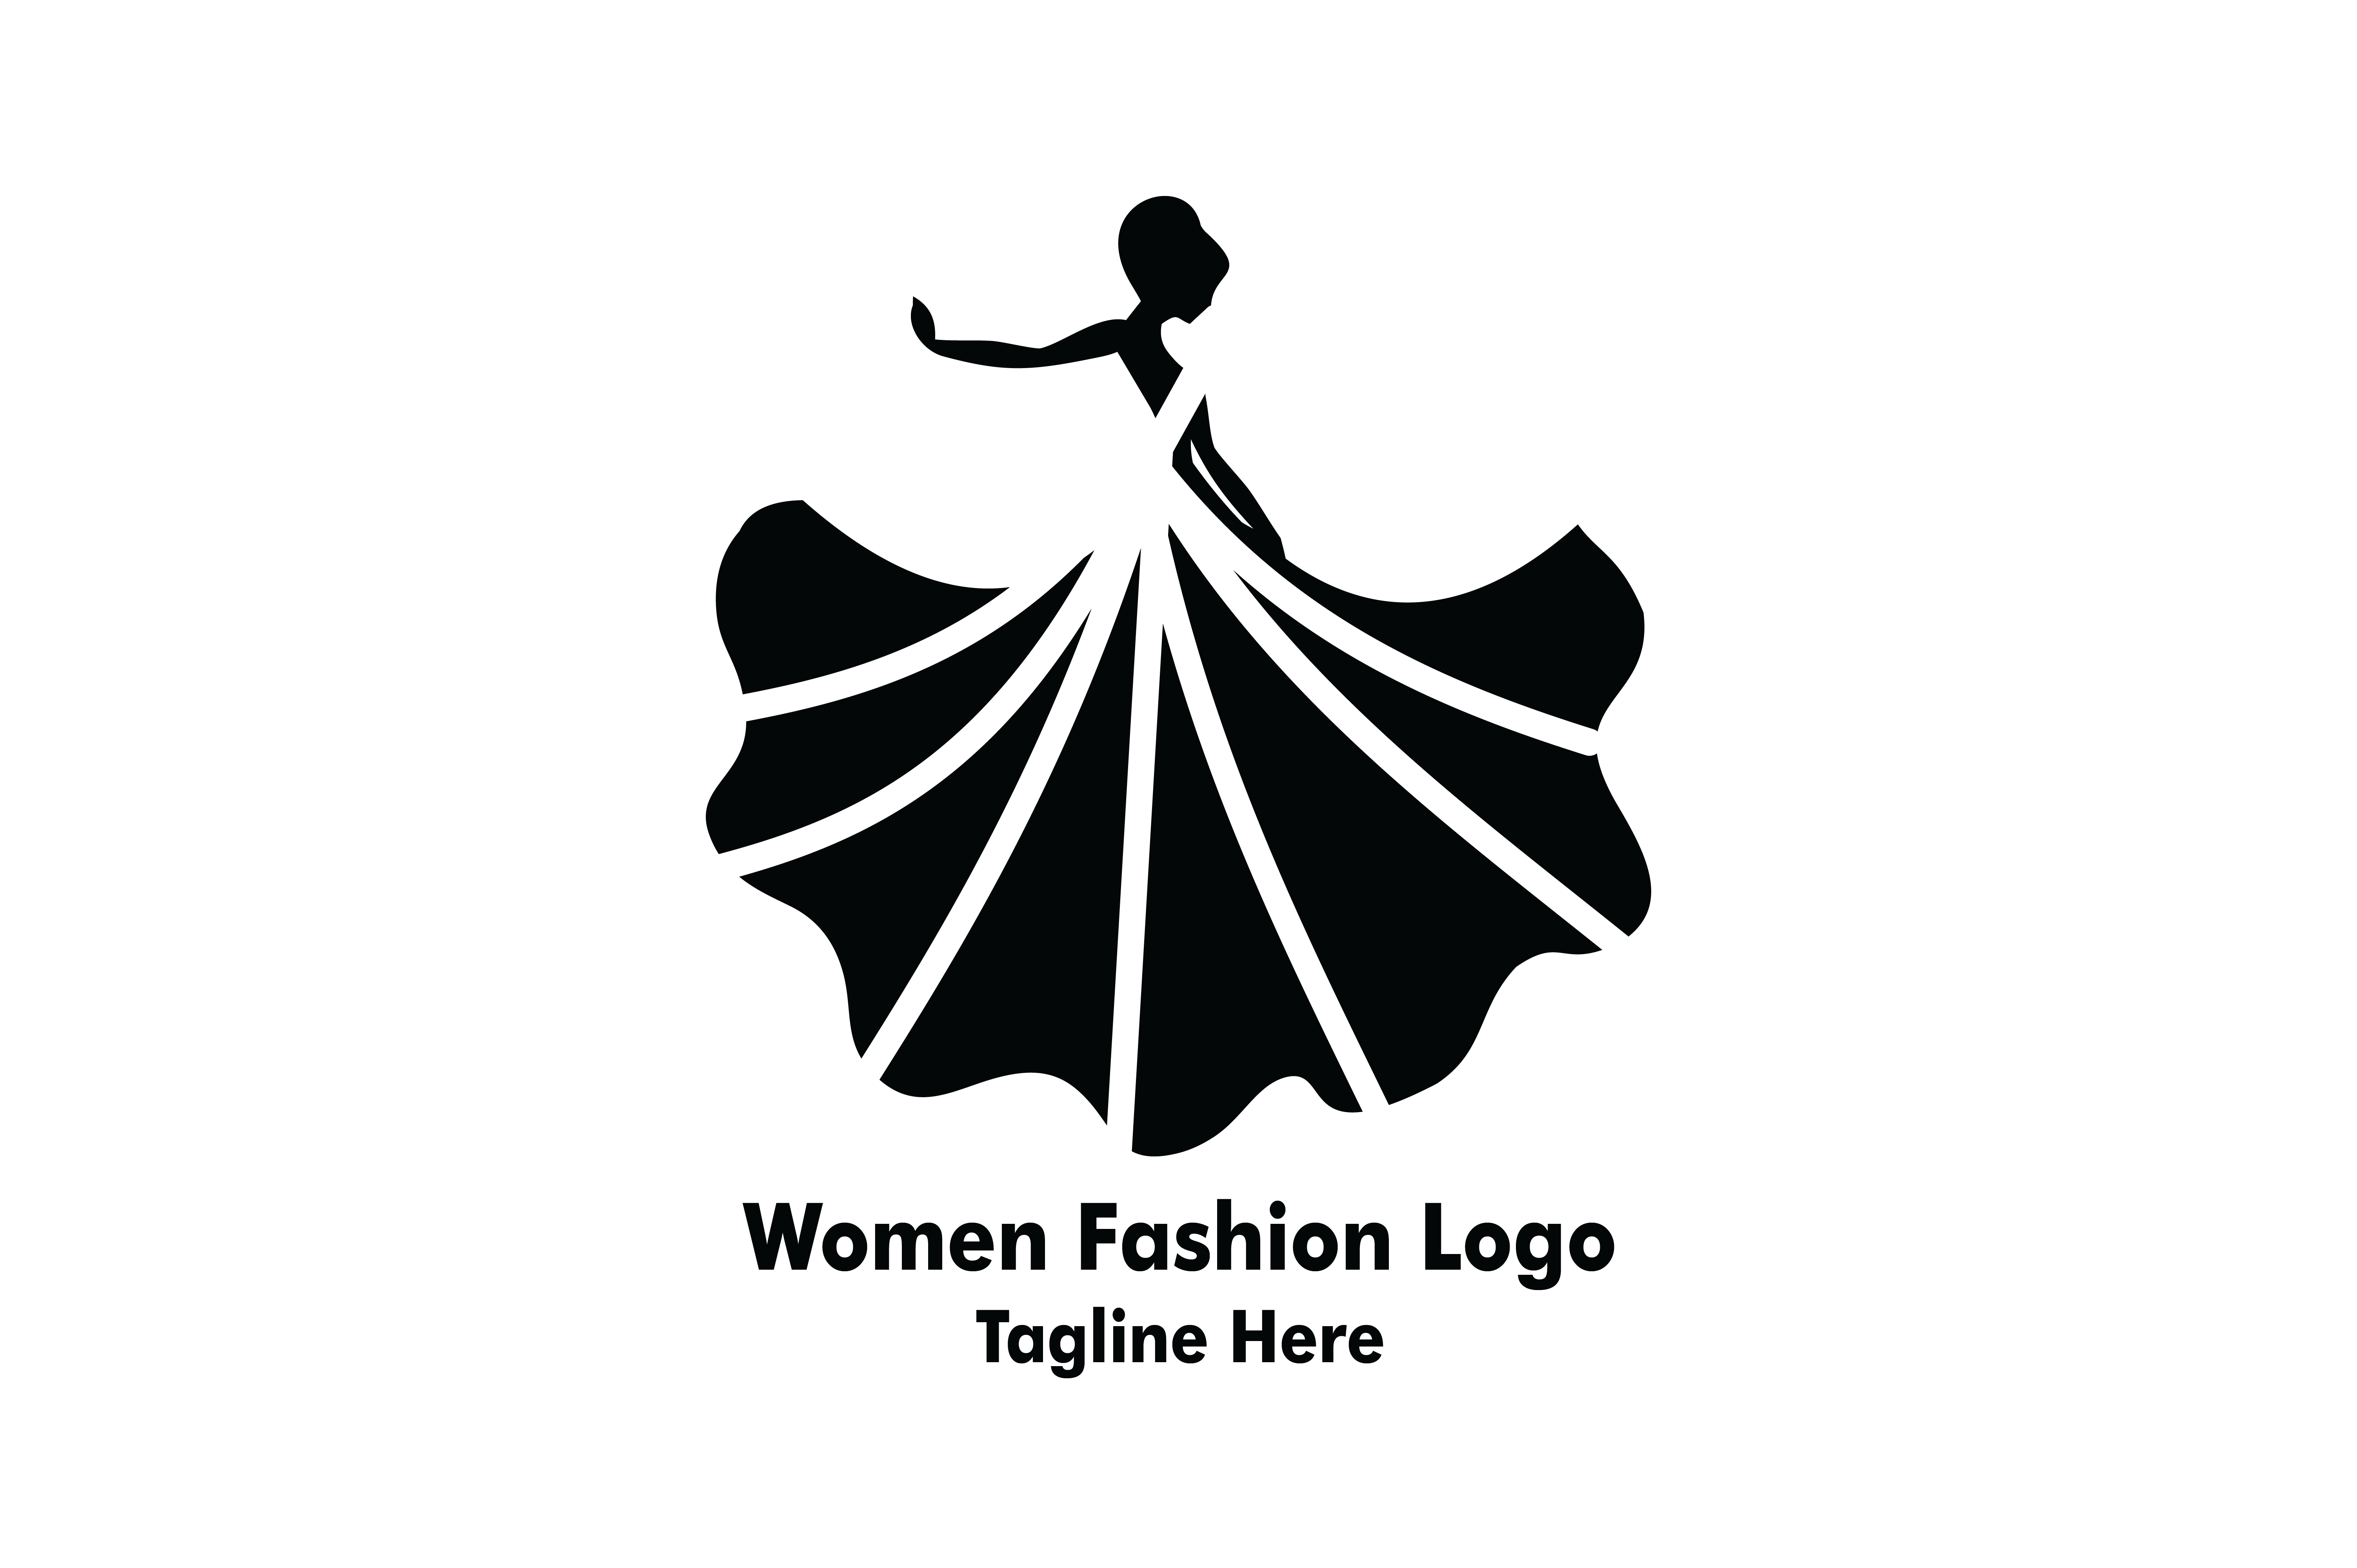 Women Beauty Fashion Logo Graphic By Yuhana Purwanti Creative Fabrica In 2020 Fashion Logo Fashion Logo Design Logo Illustration